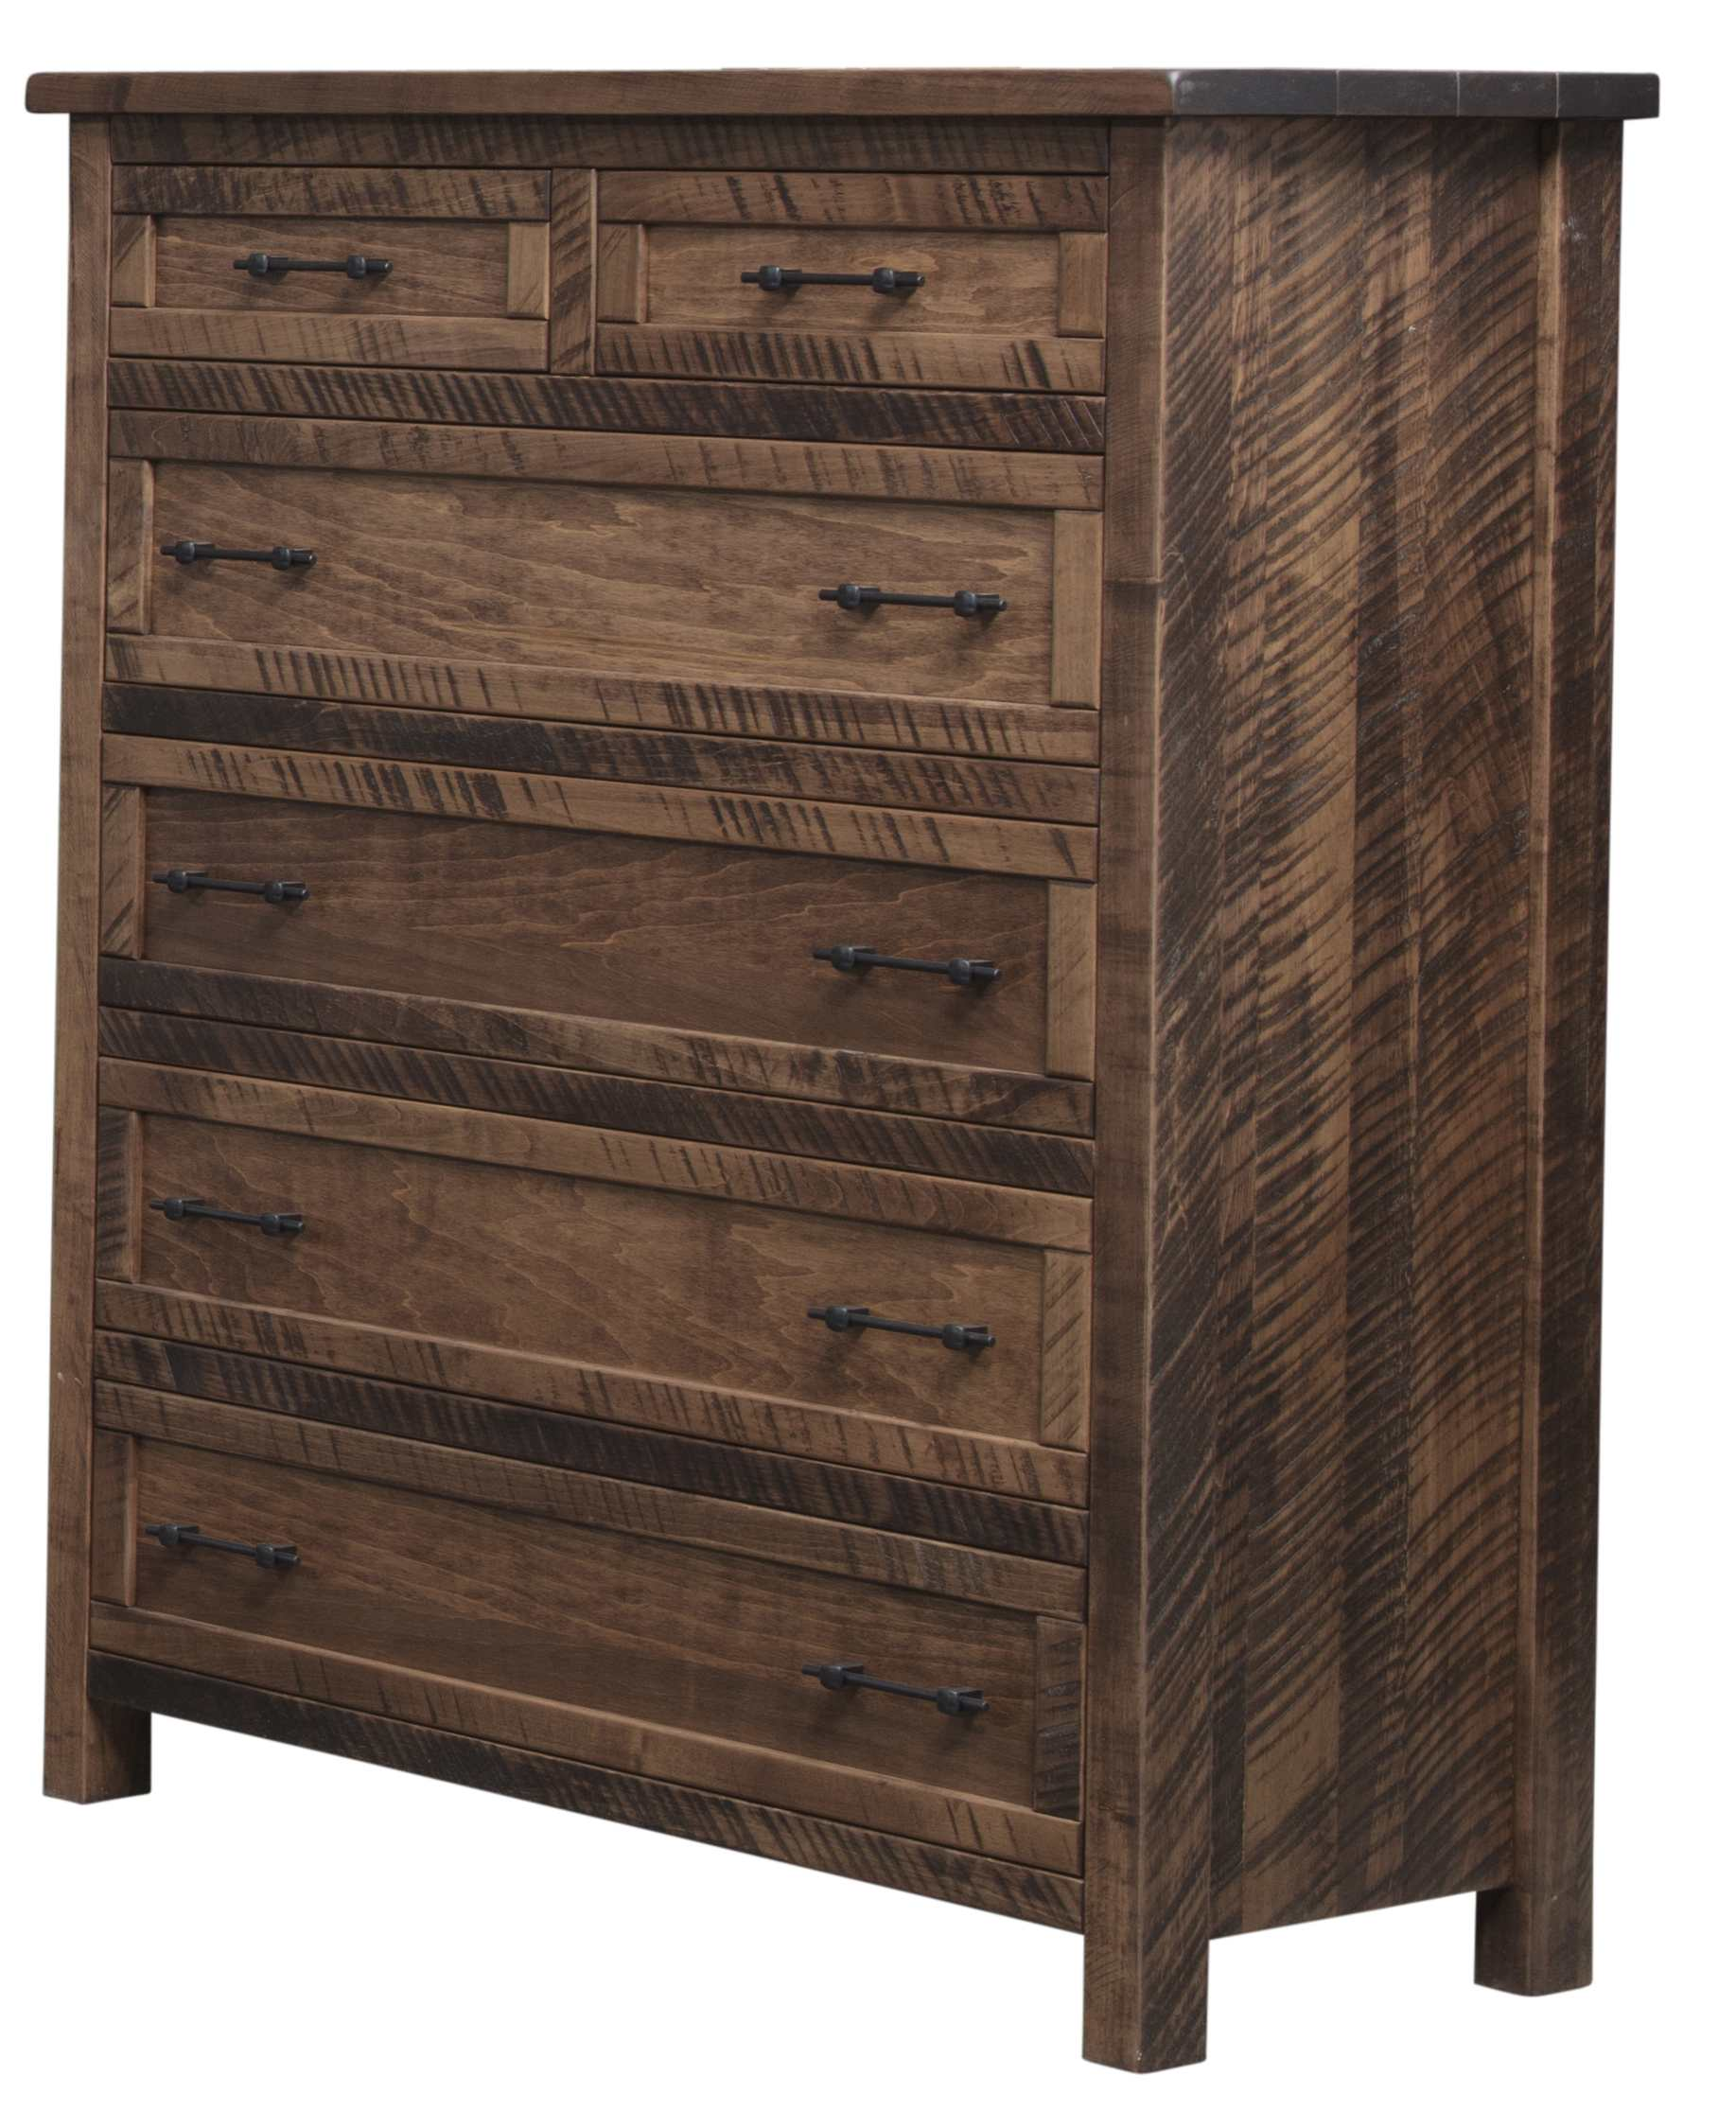 Denali Chest of Drawers